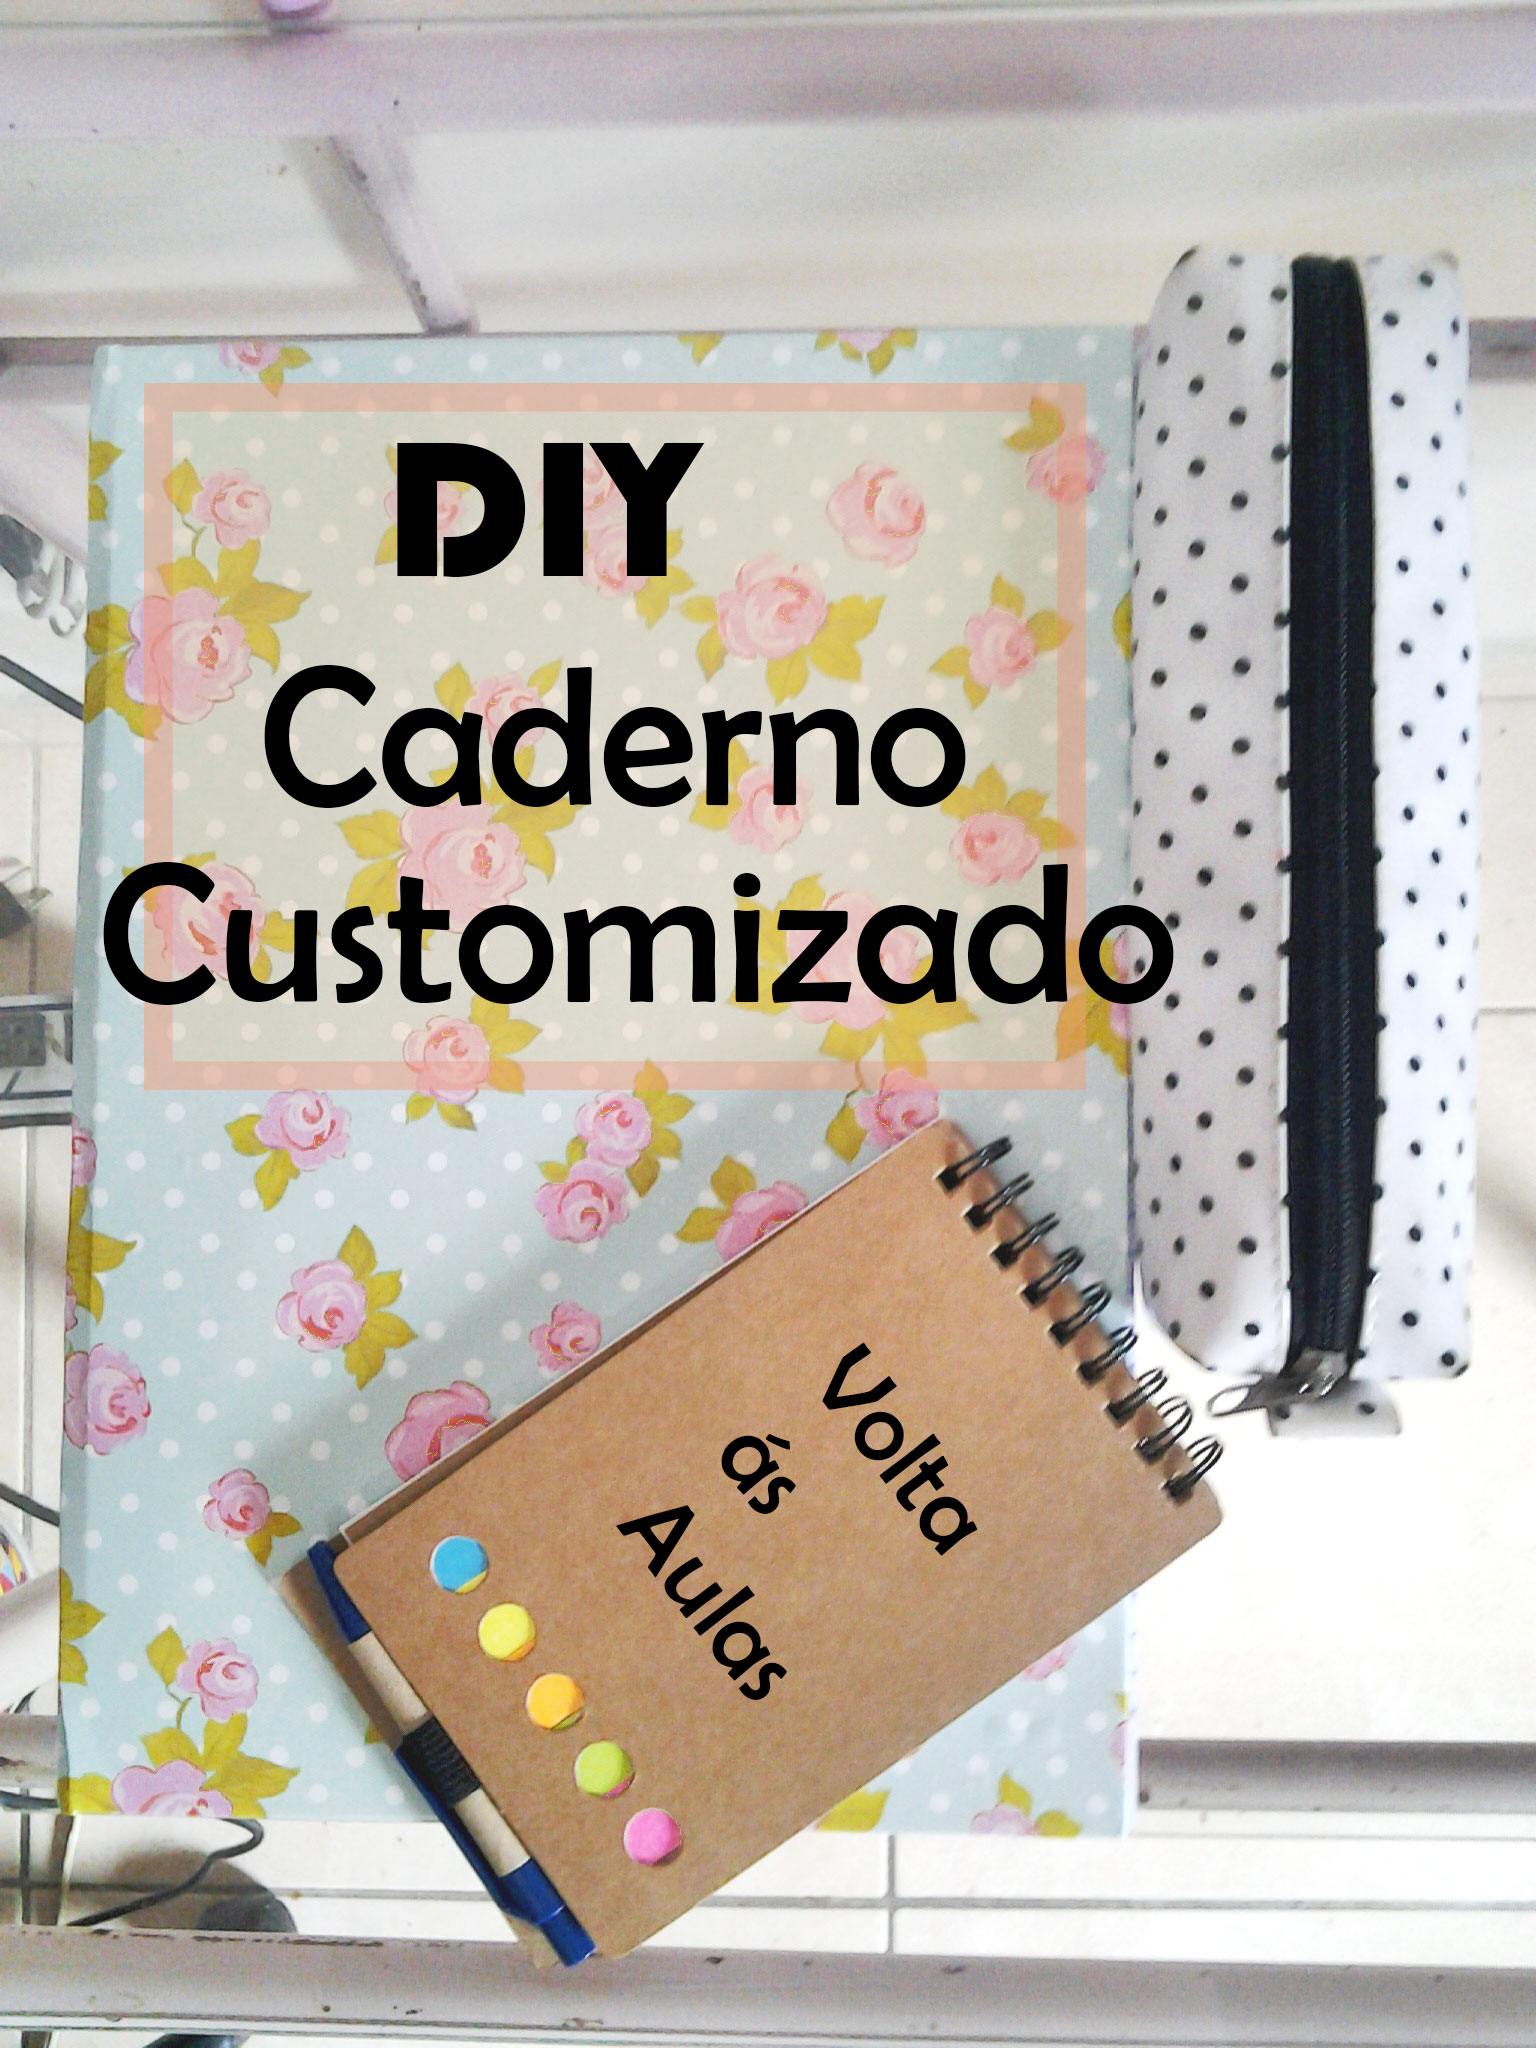 DIY-DECORANDO-CADERNO-capa